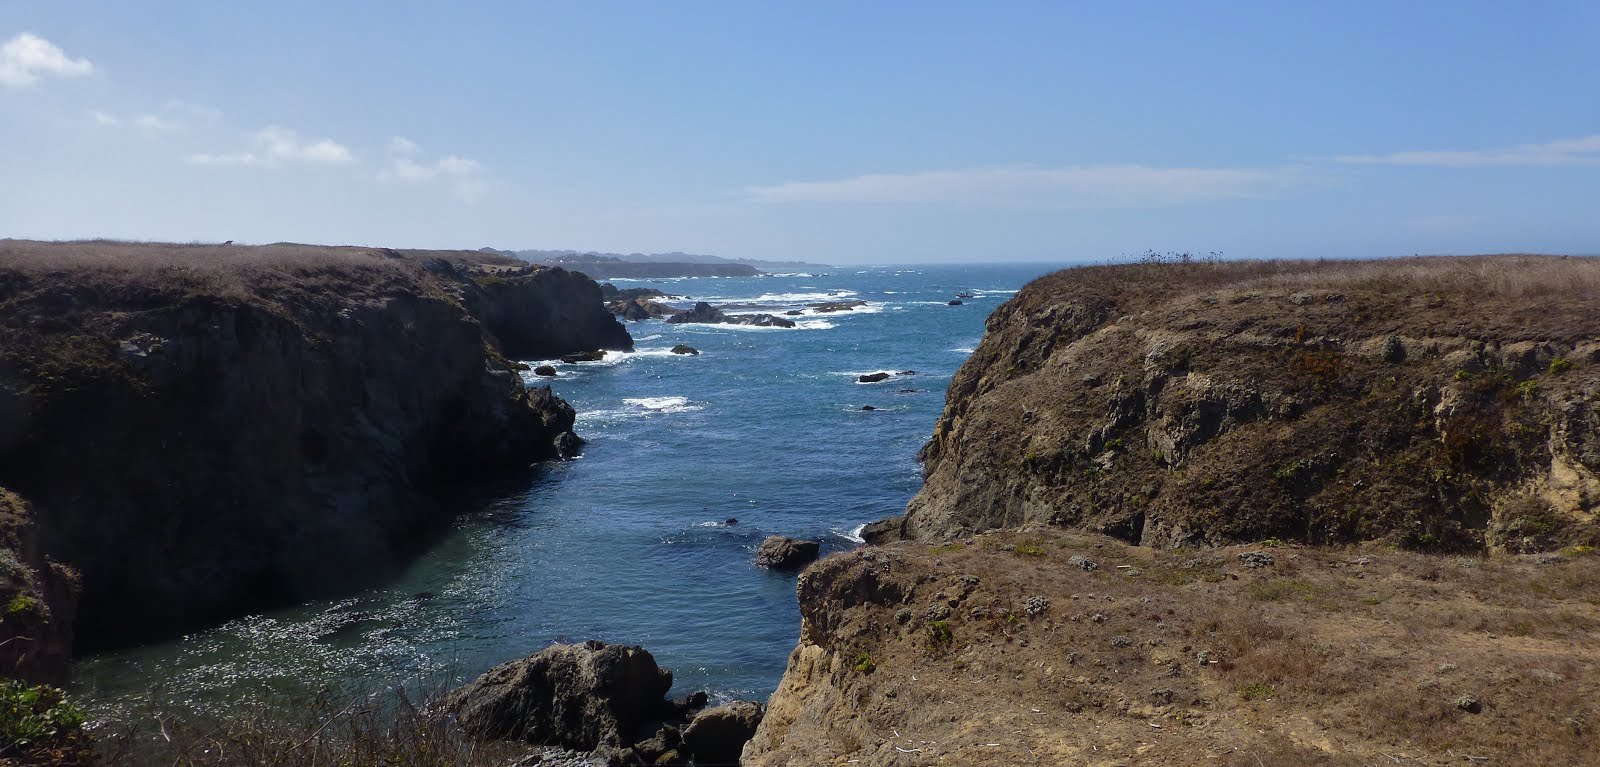 Visiting Fort Bragg's Once Hidden Coastline